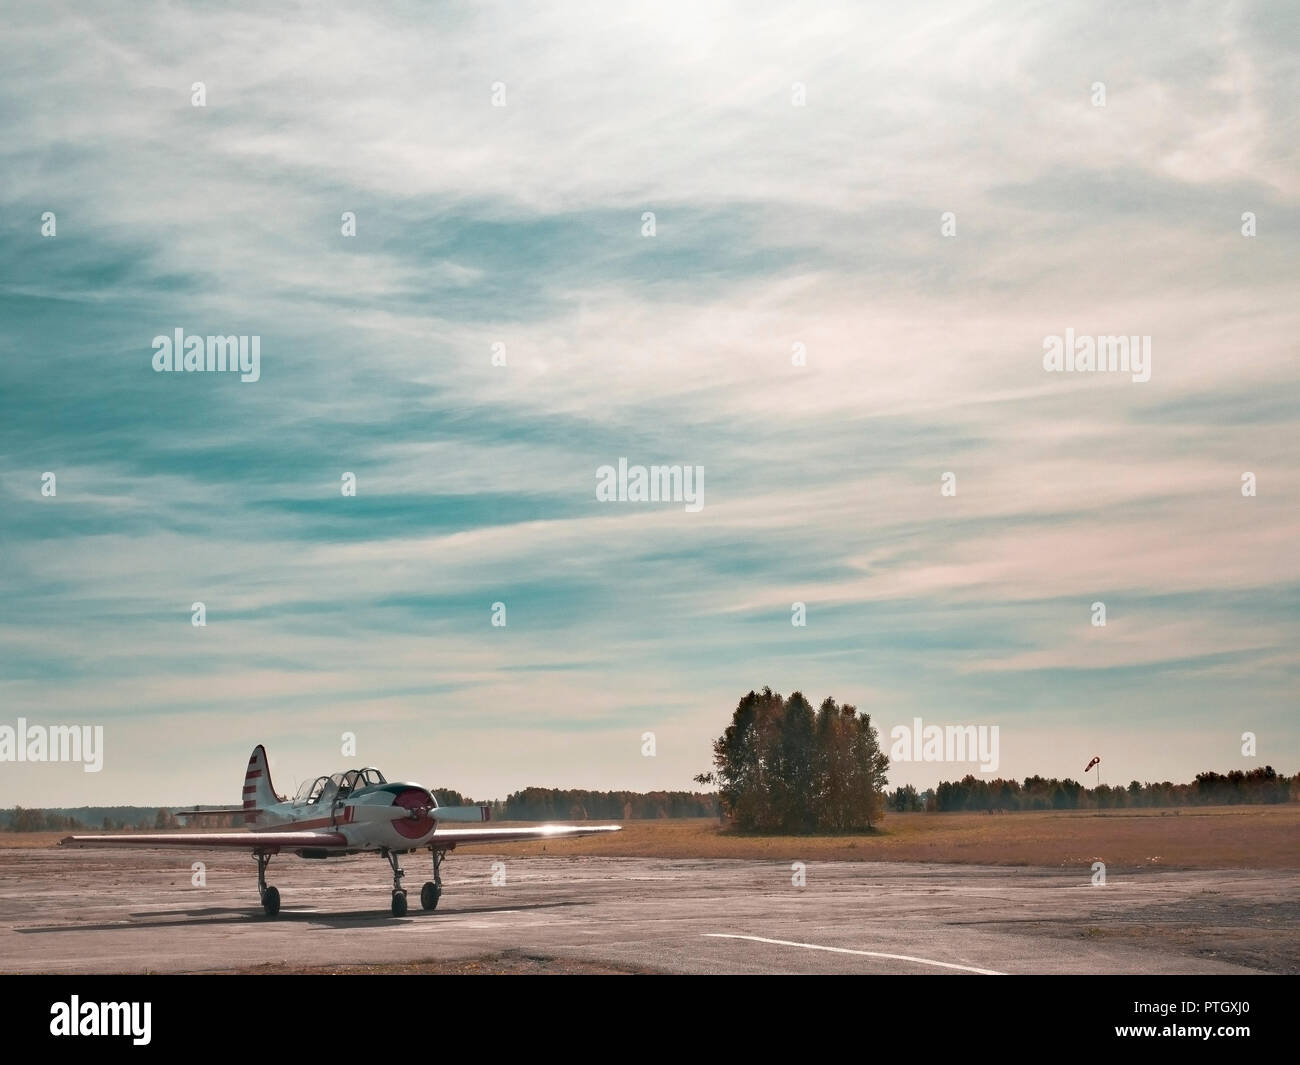 View of airplane on grassy airfield close up; classic plane taxiing to takeoff on runway; training aerobatic flight of oldschool aircraft; leisure act - Stock Image